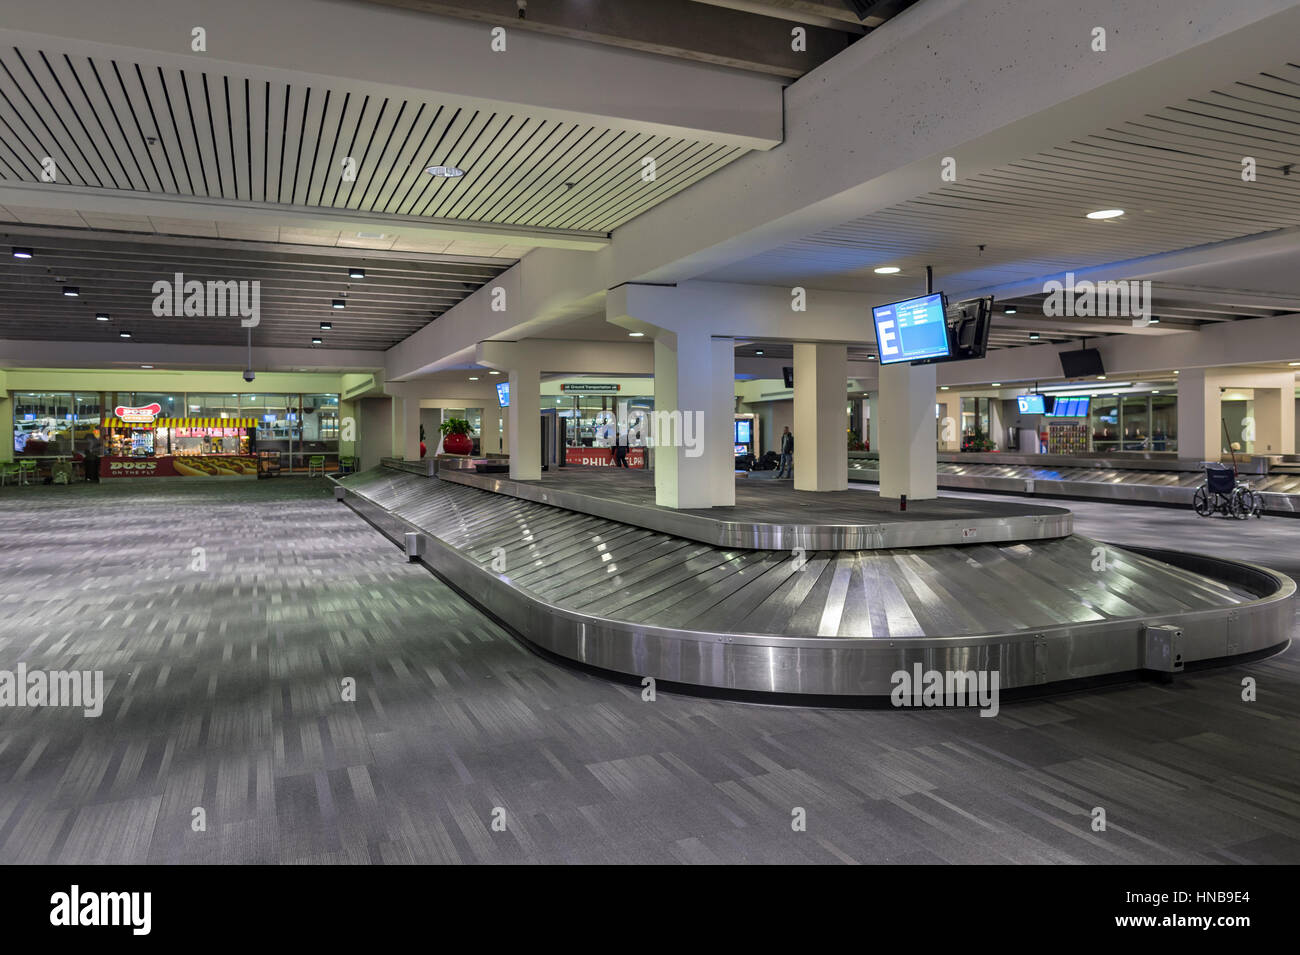 Empty Airport Luggage Area - Stock Image